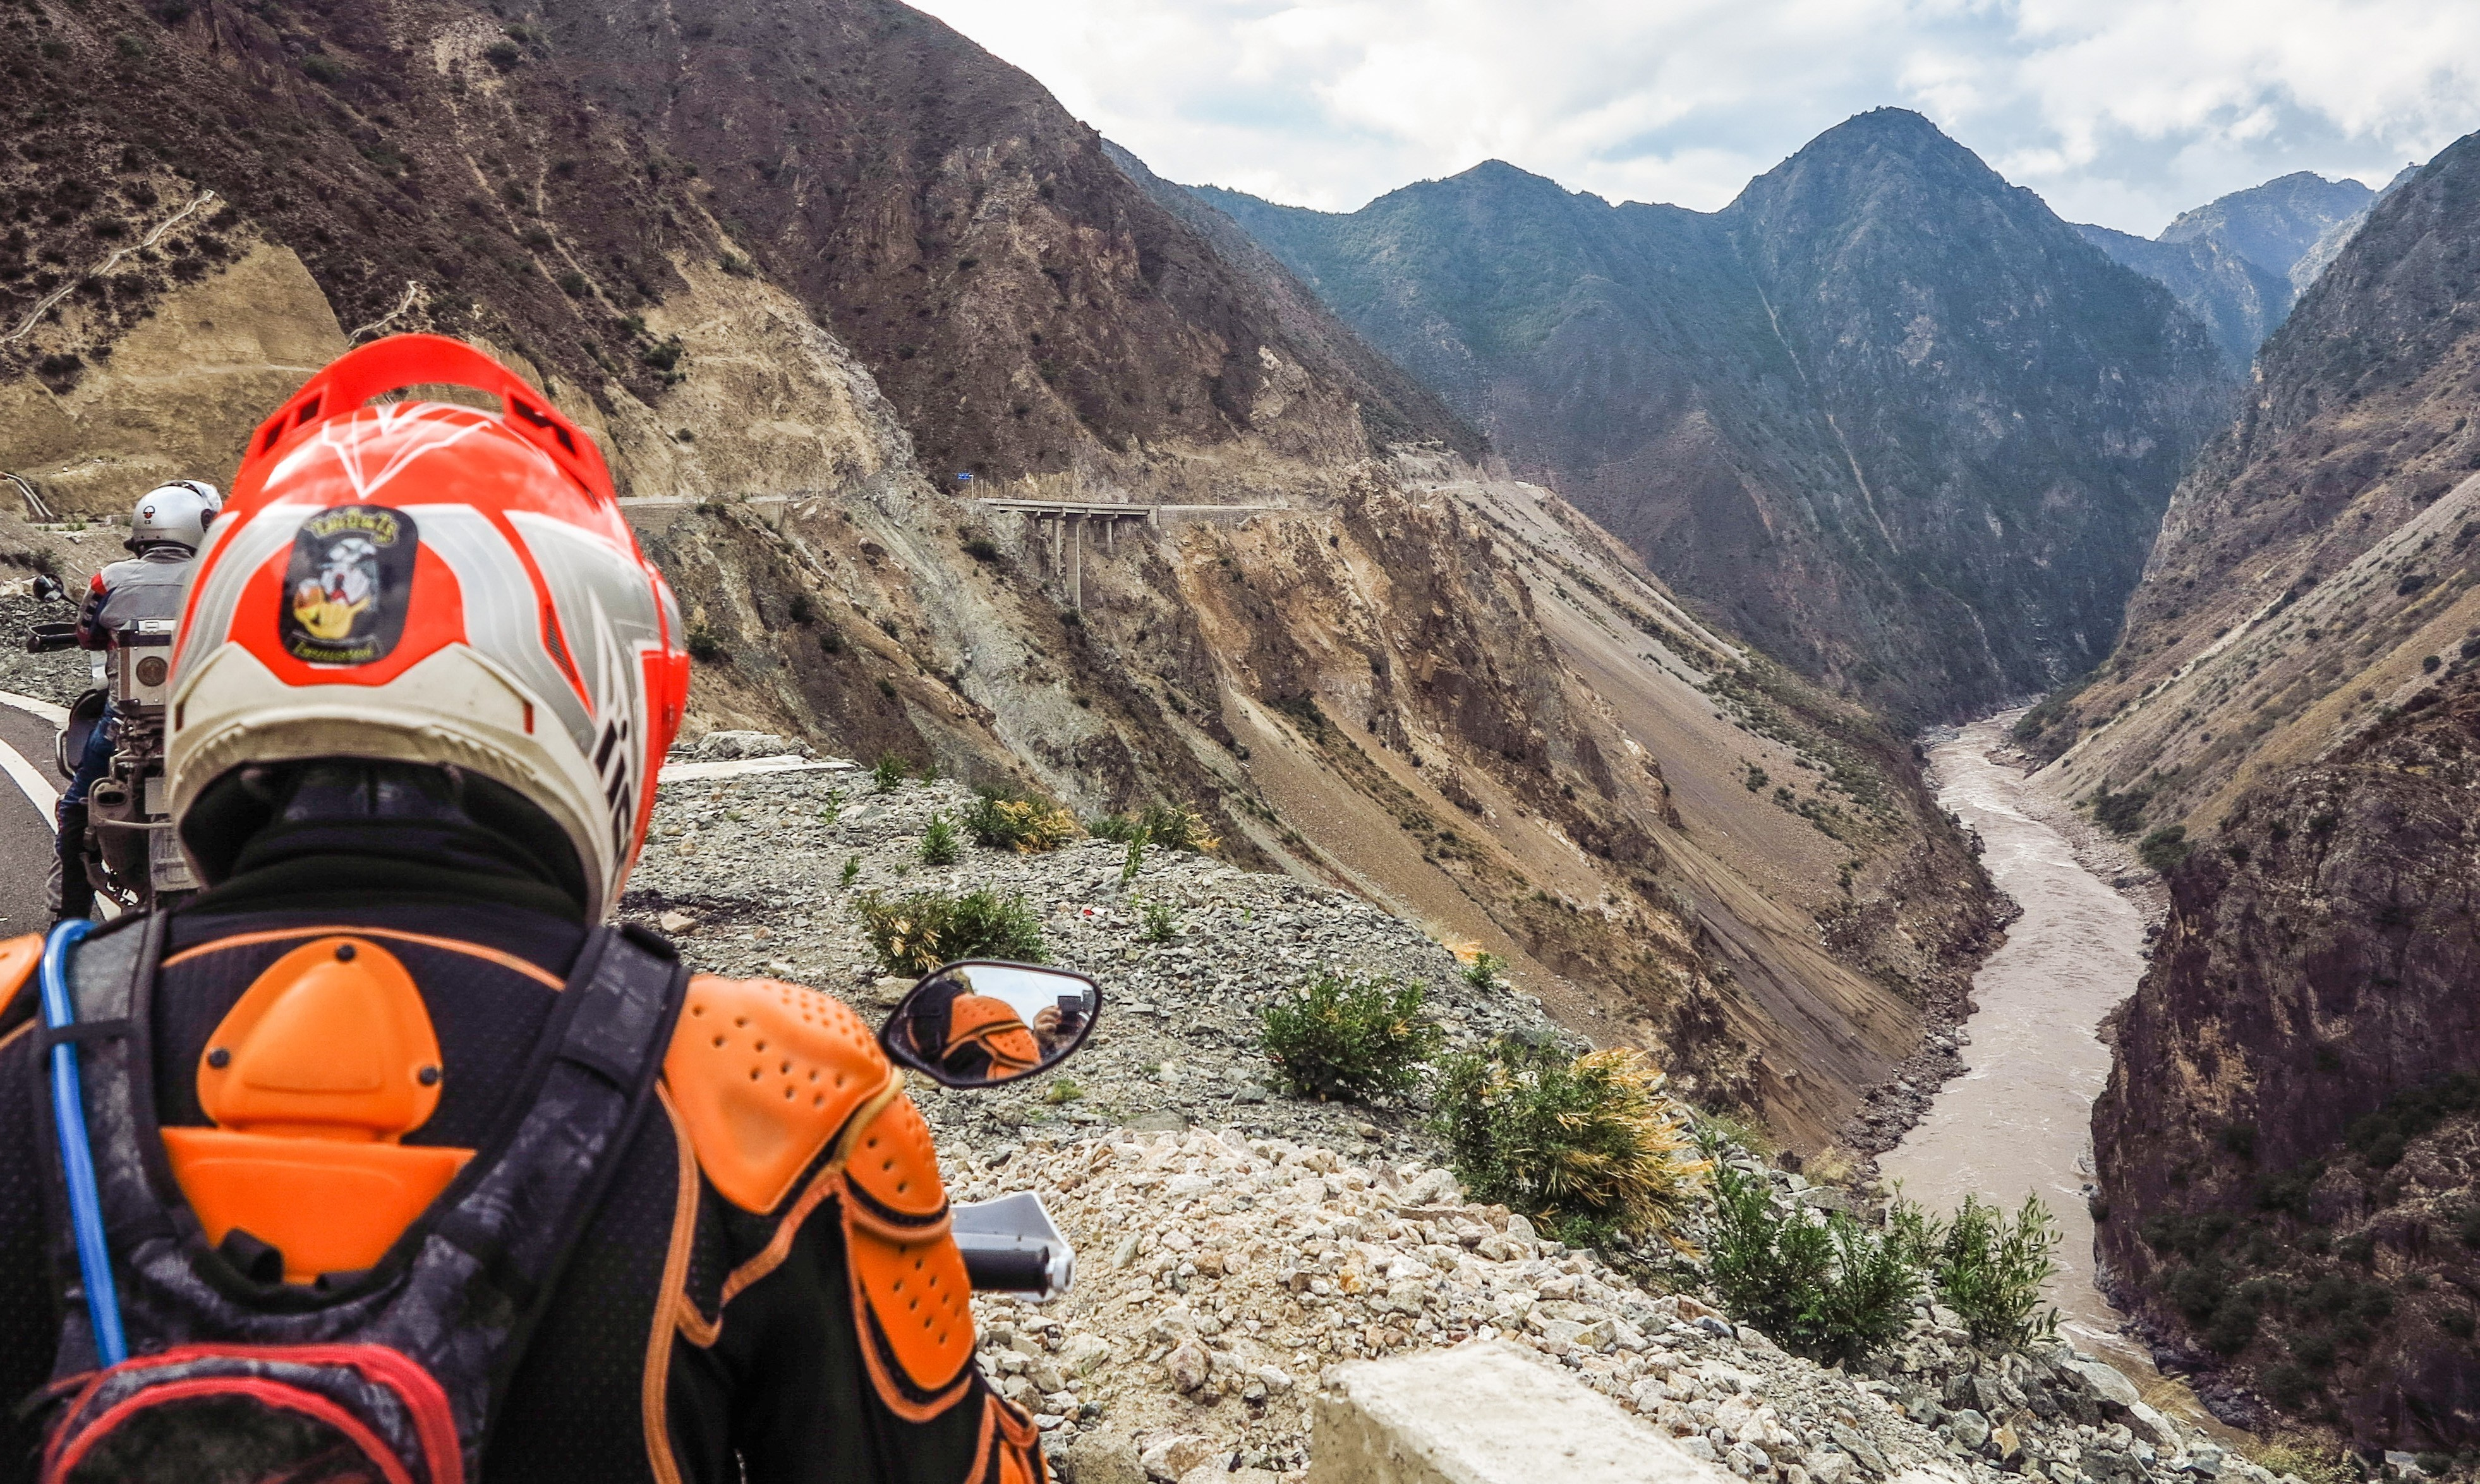 Thailand to Nepal motorcycle tours with Motoasia. Travel Thailand to Nepal, adventure riding across China and passing through Everest Base Camp.